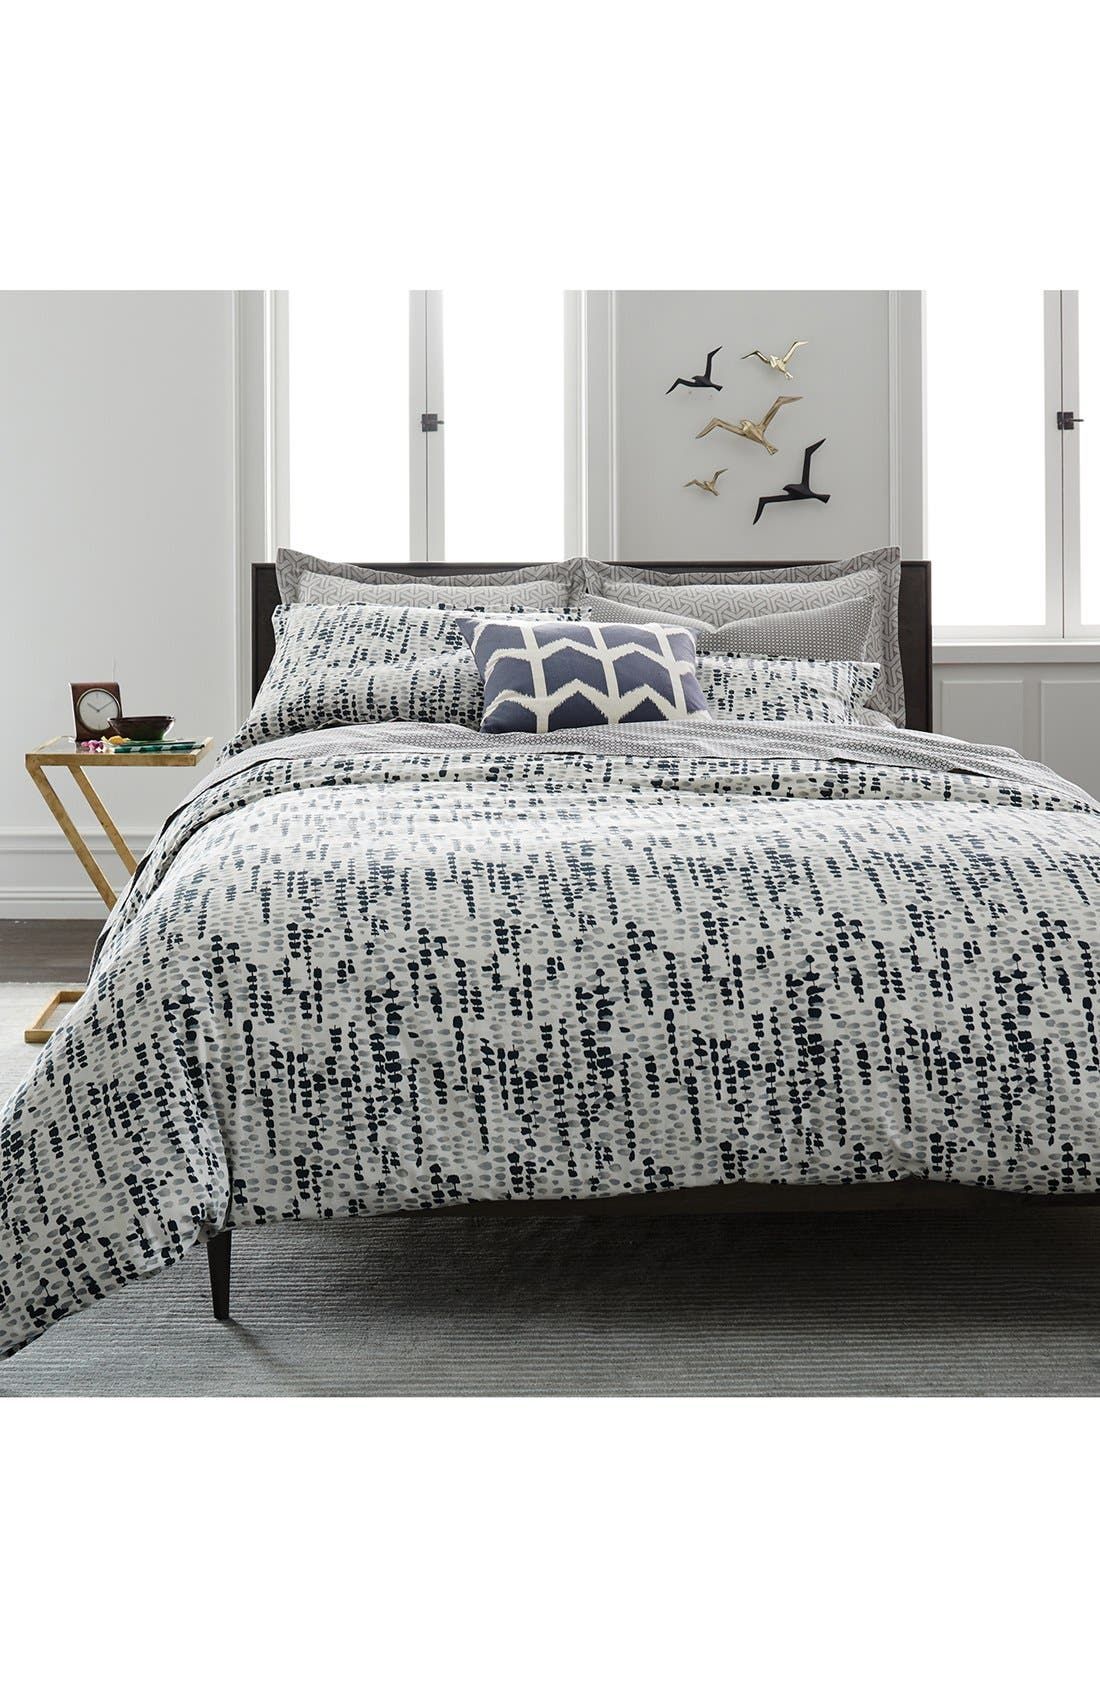 DwellStudio 'Lucienne' Duvet Cover & Shams